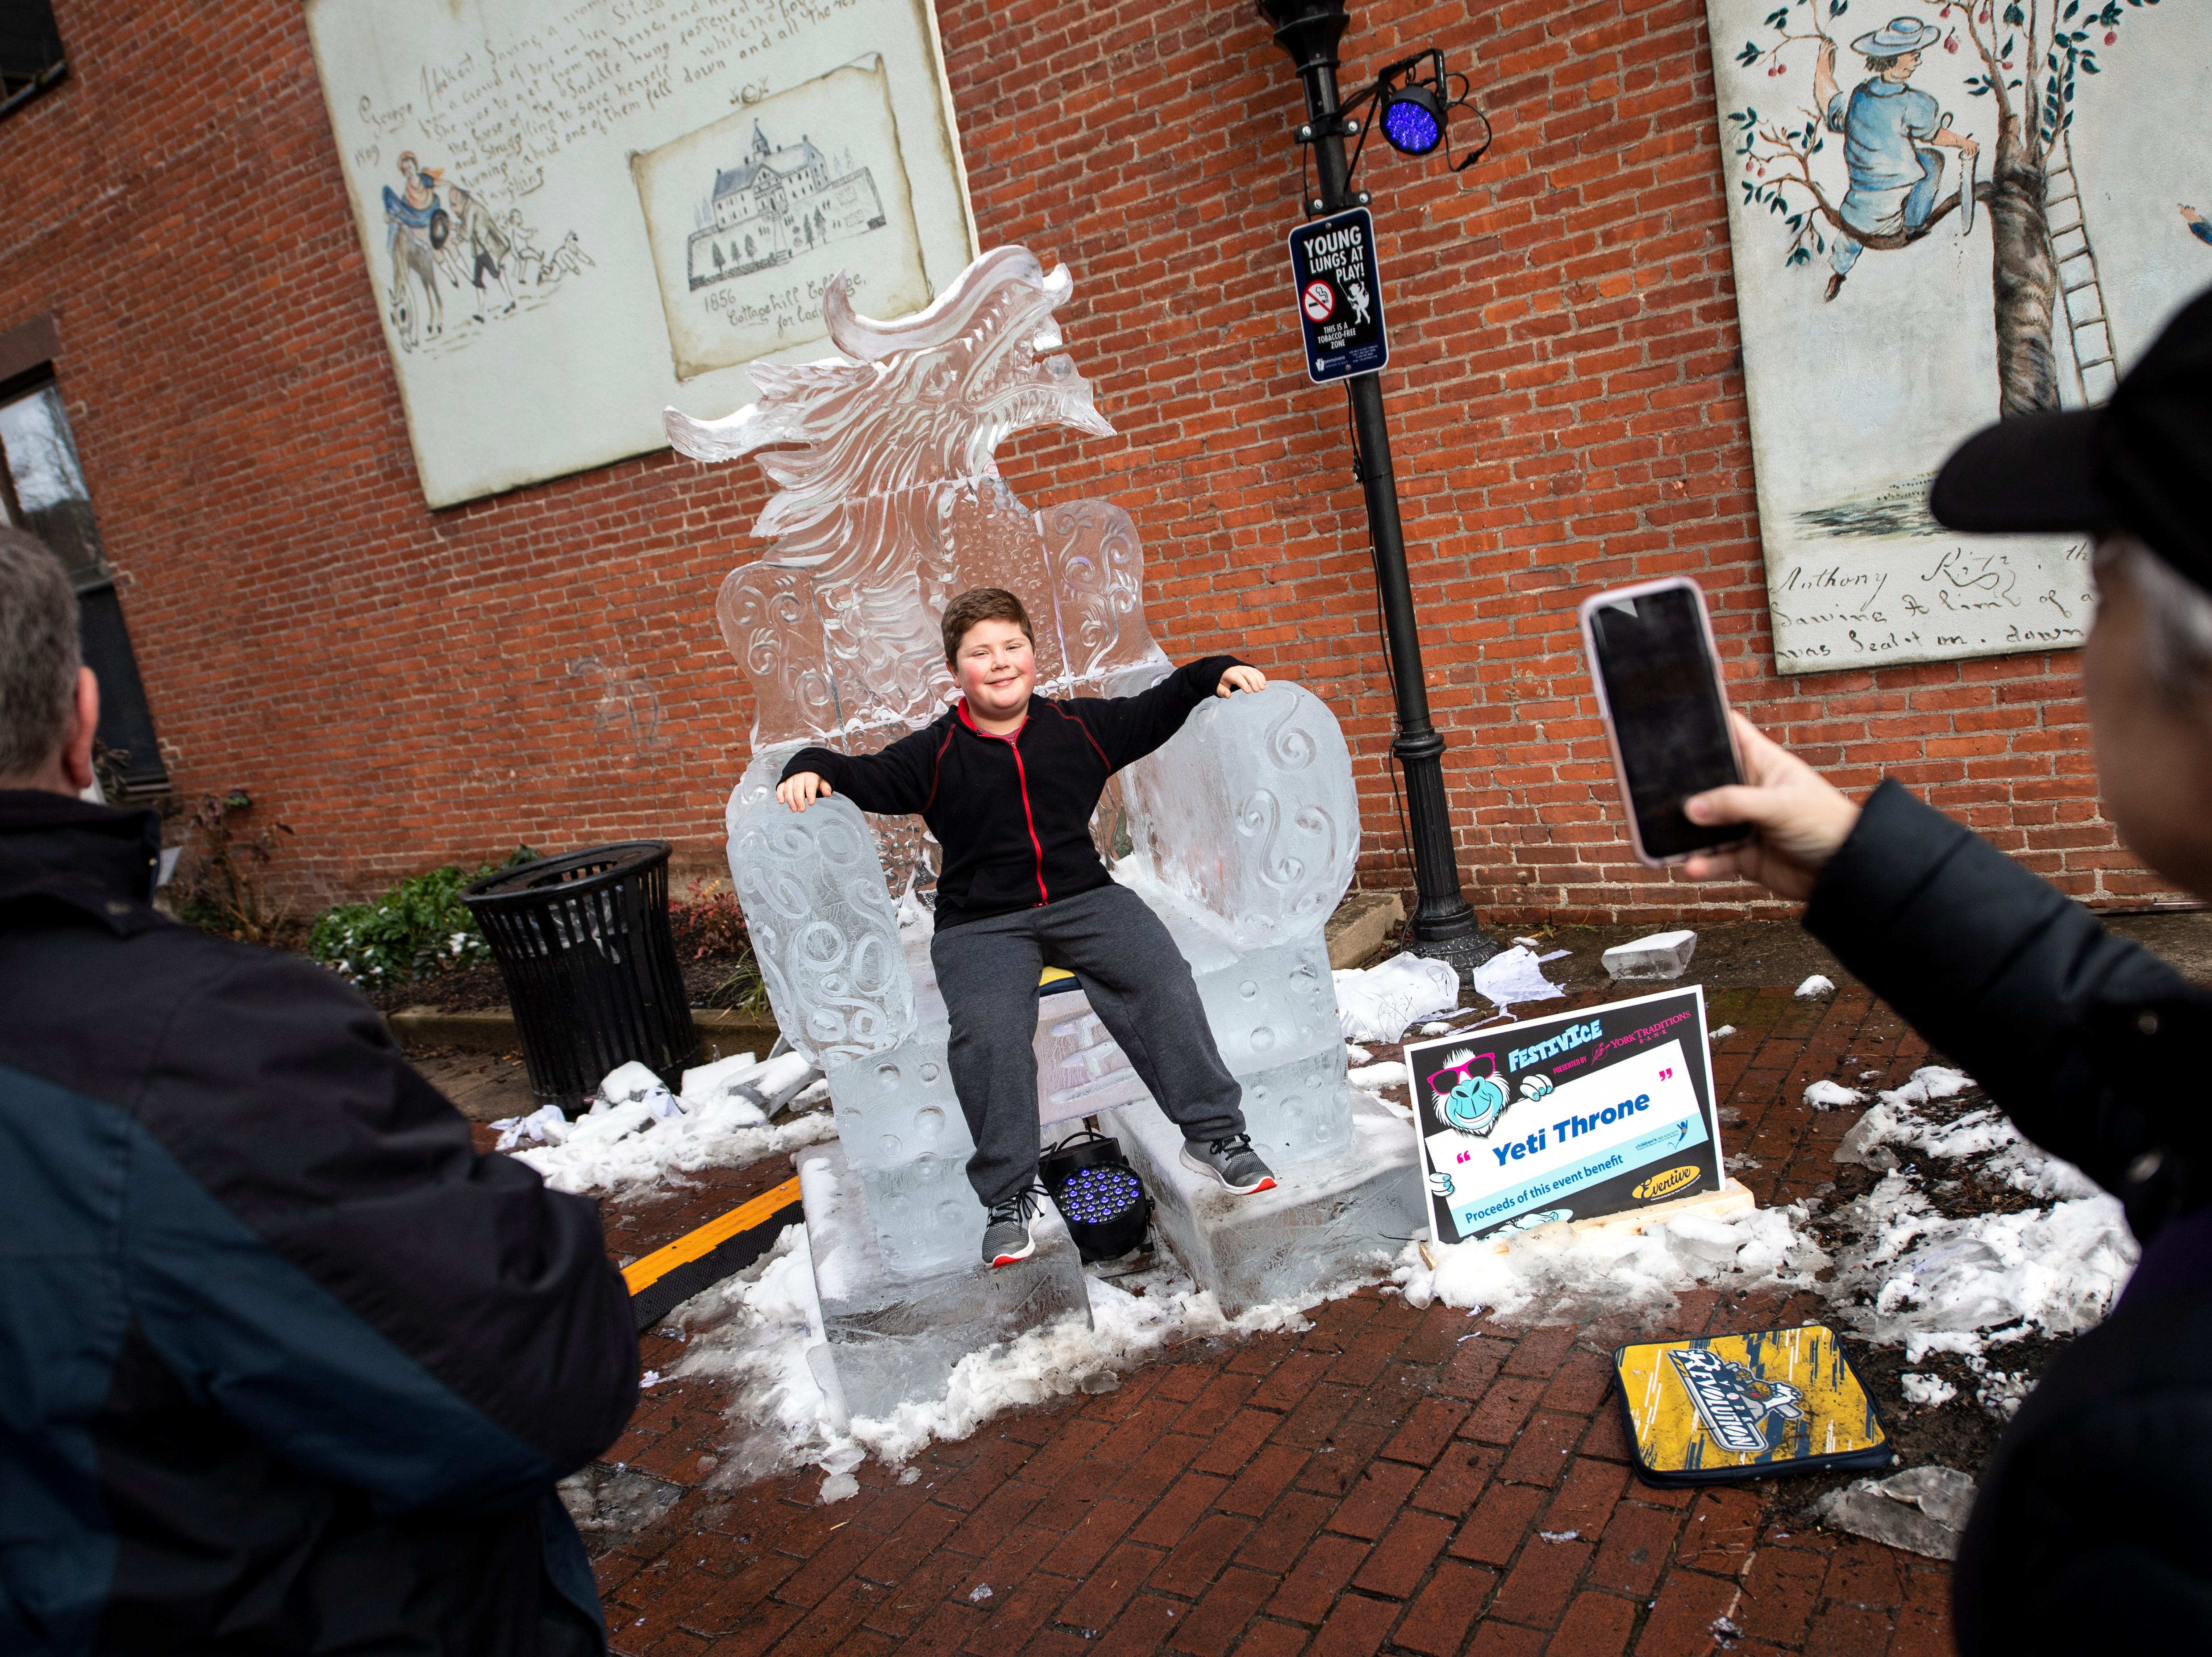 """Hayden Brandt, 11, of East York, sits in the """"Yeti Throne"""" in Cherry Lane, Friday, Jan. 18, 2019. The FestivICE ice festival has interactive ice sculptures, an ice slide and more. The three-day event ends Saturday."""